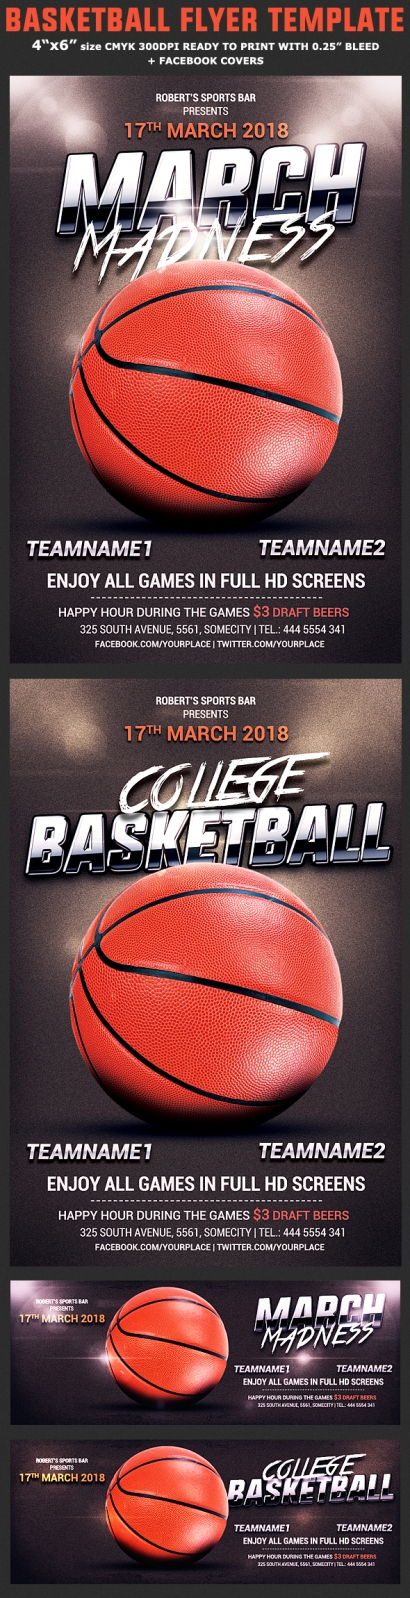 basketball-flyer-template-preview